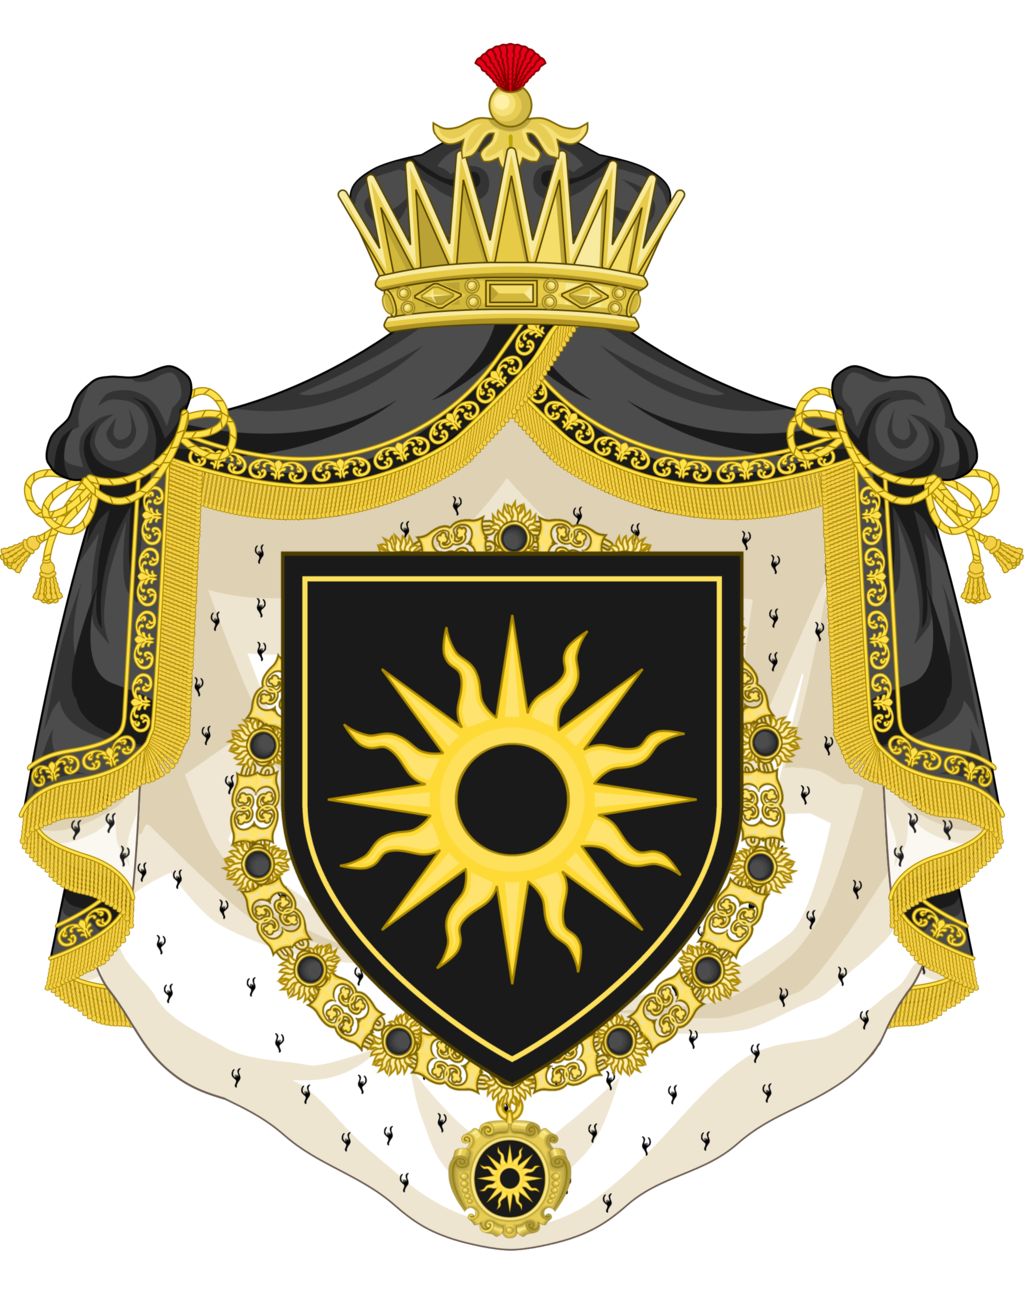 [EVENT COMMUNAUTAIRE]Front sud - Page 2 1562193775-blason-transparent